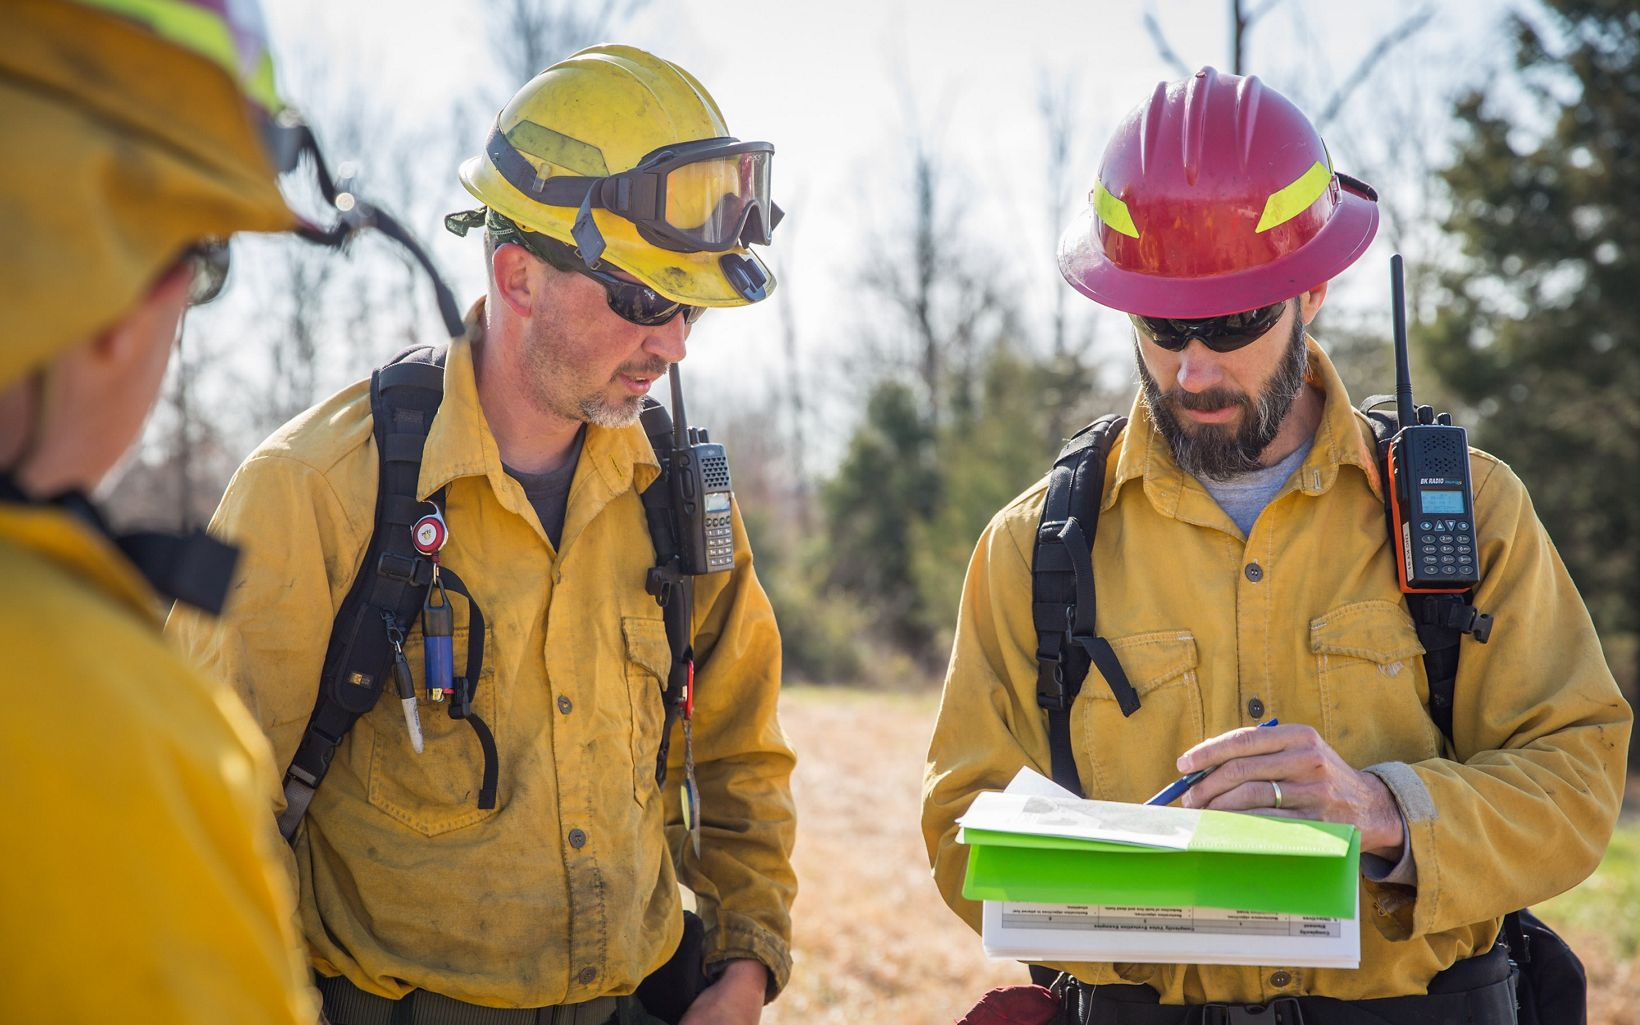 Three members of a fire crew consult a map.